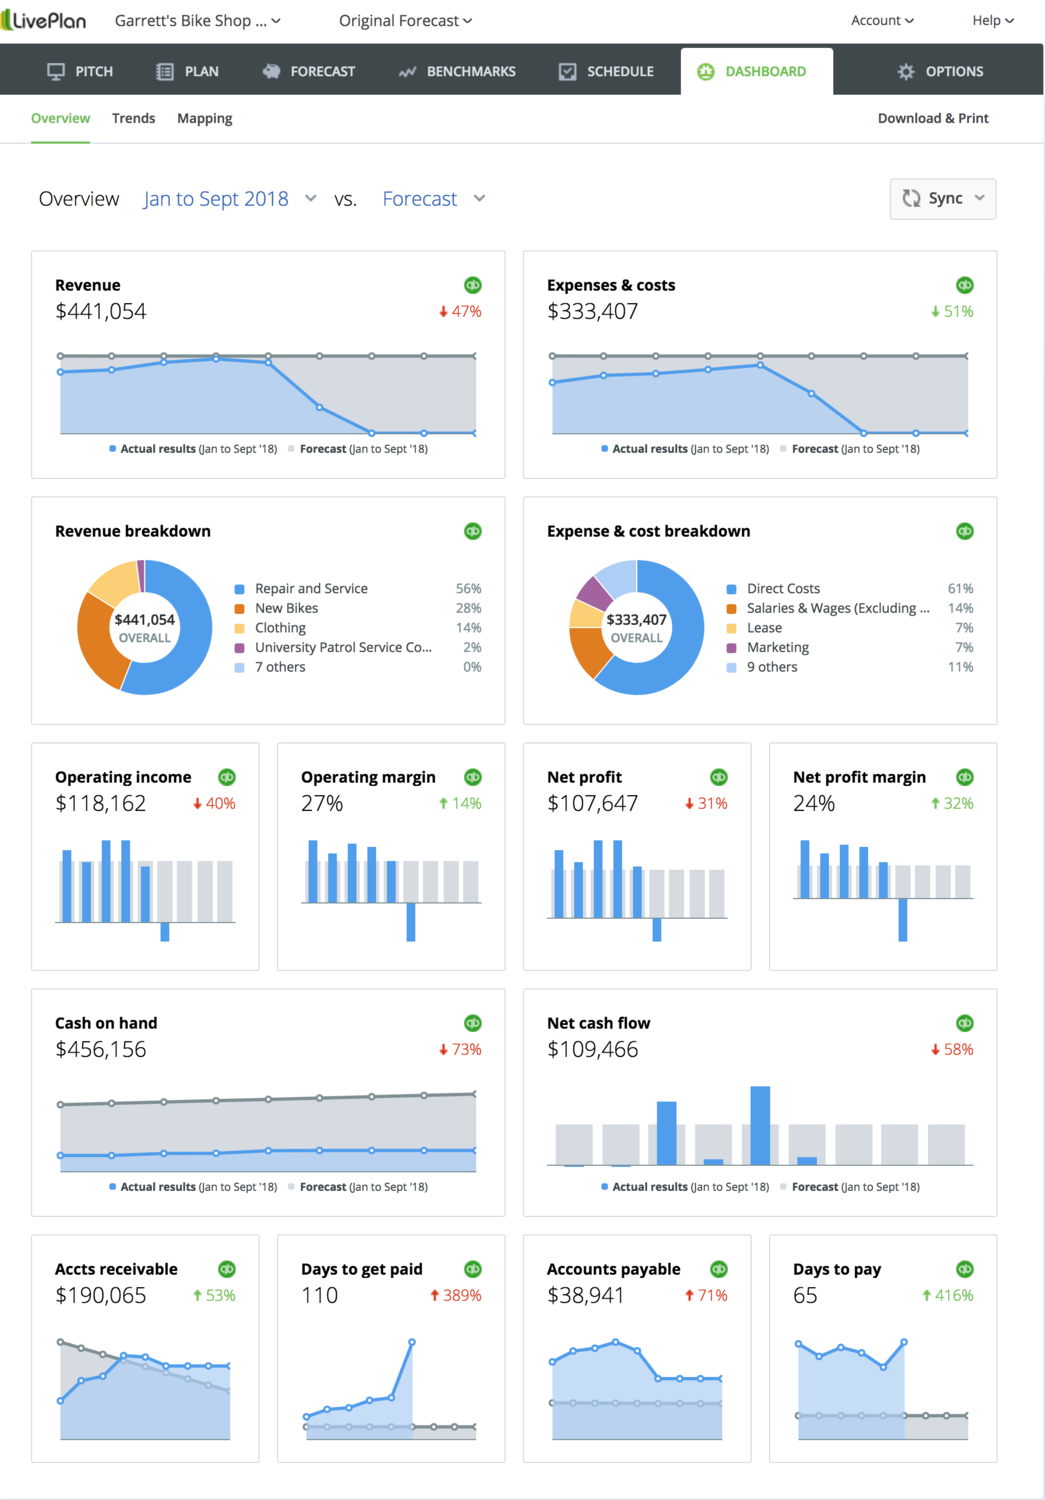 The LivePlan Dashboard